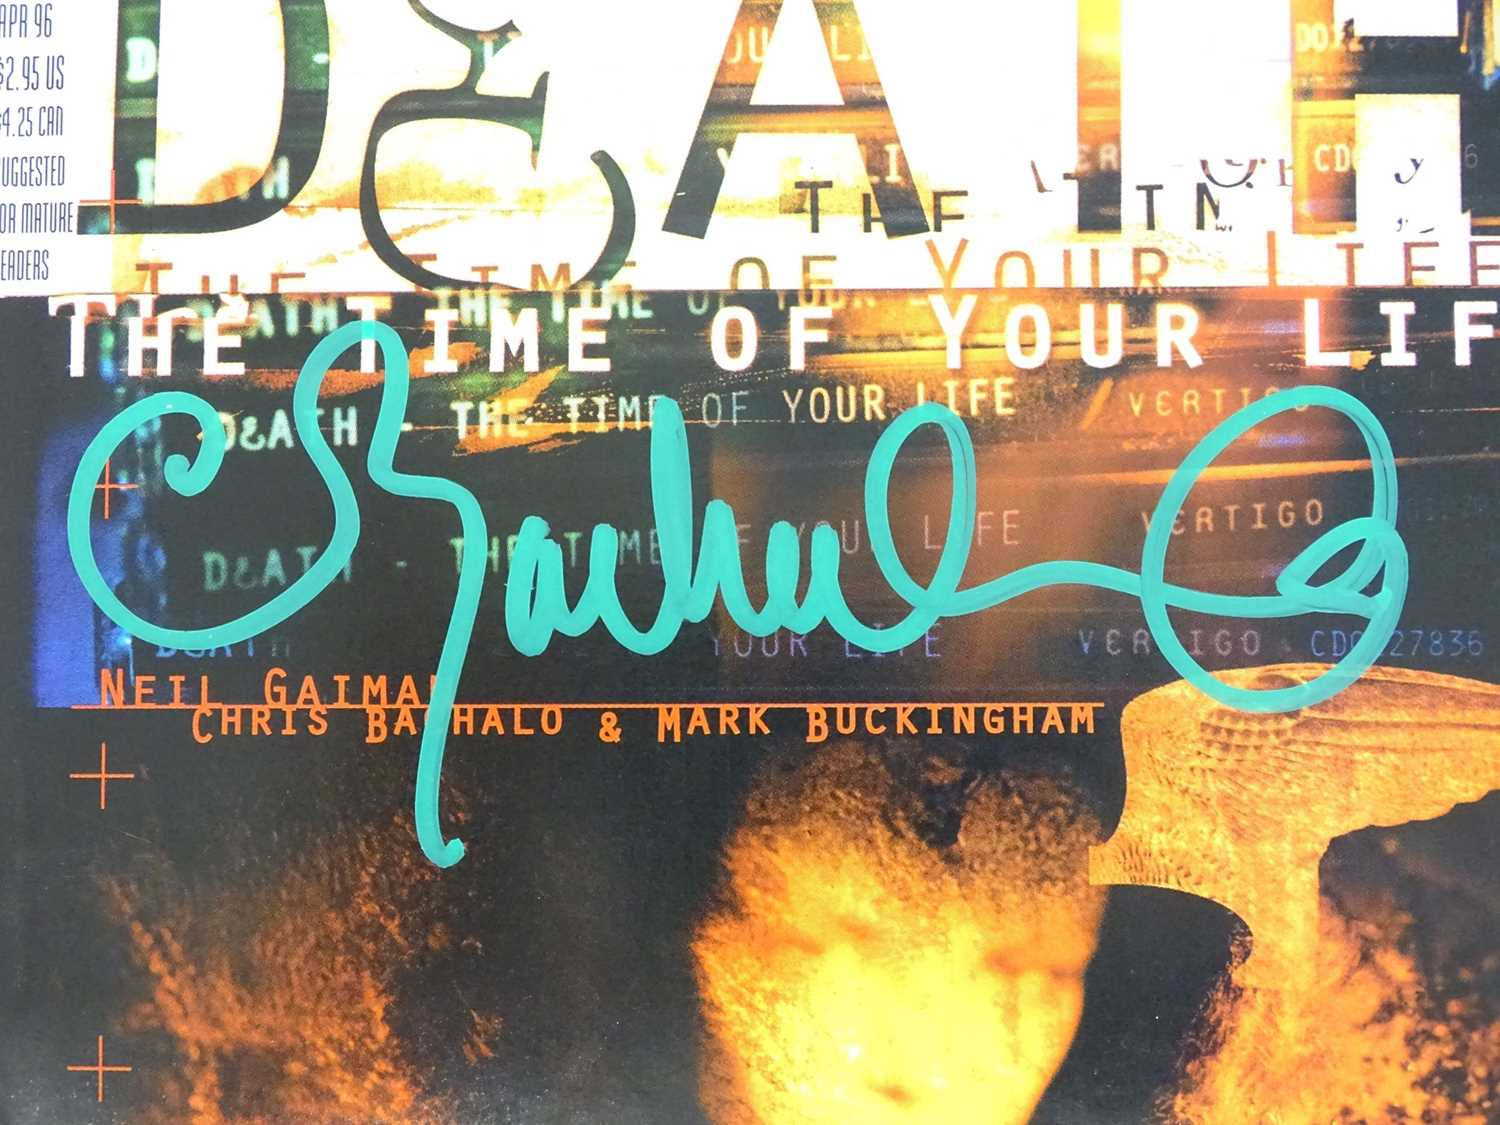 DEATH: THE TIME OF YOUR LIFE #1 - (DC/VERTIGO - 1996) - Signed to Front Cover by Chris Bachalo - Image 10 of 11